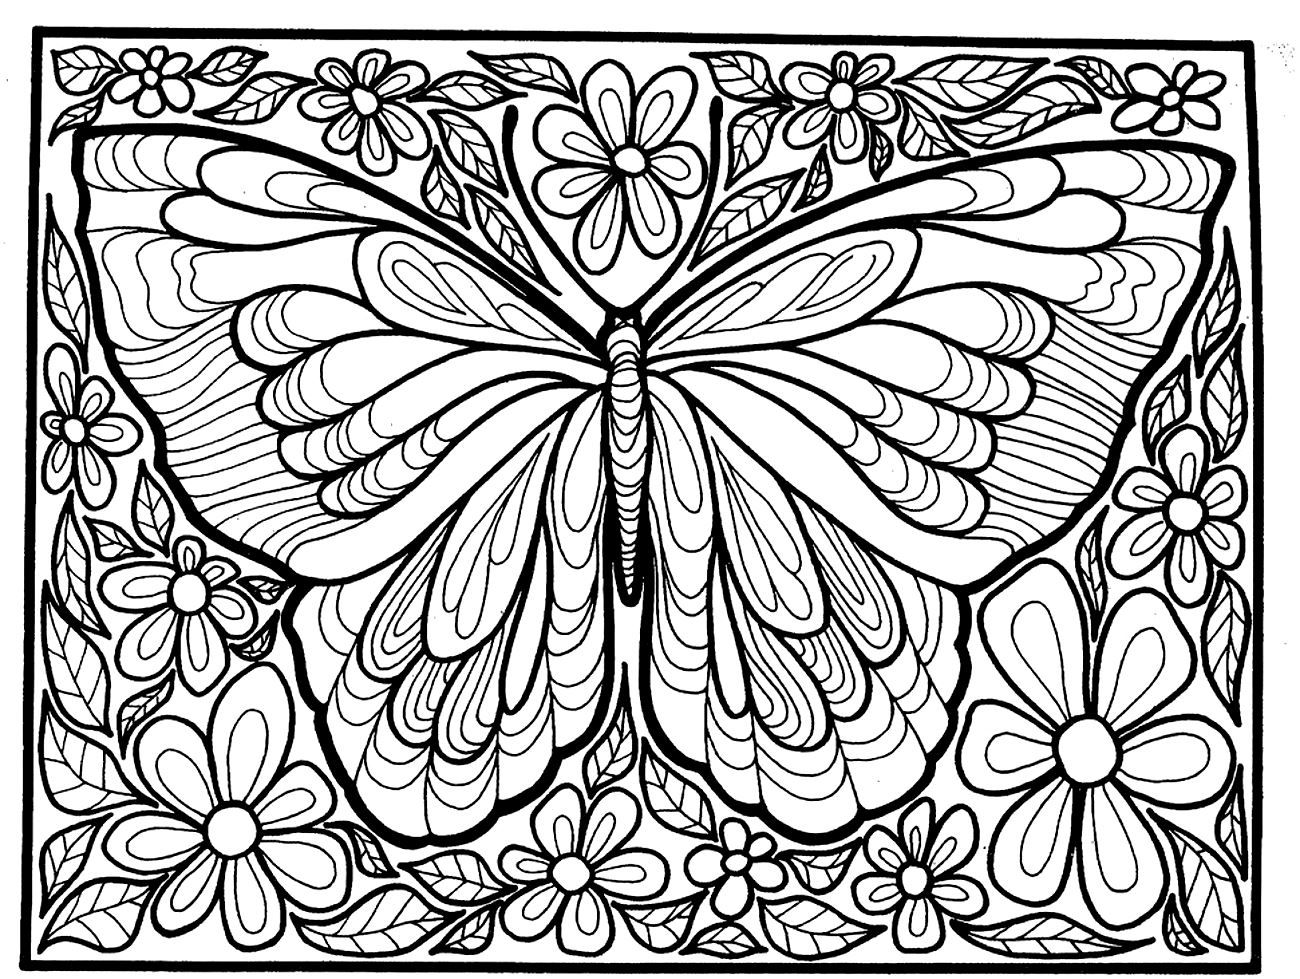 Free butterfly coloring pages - To Print This Free Coloring Page Coloring Adult Difficult Big Butterfly